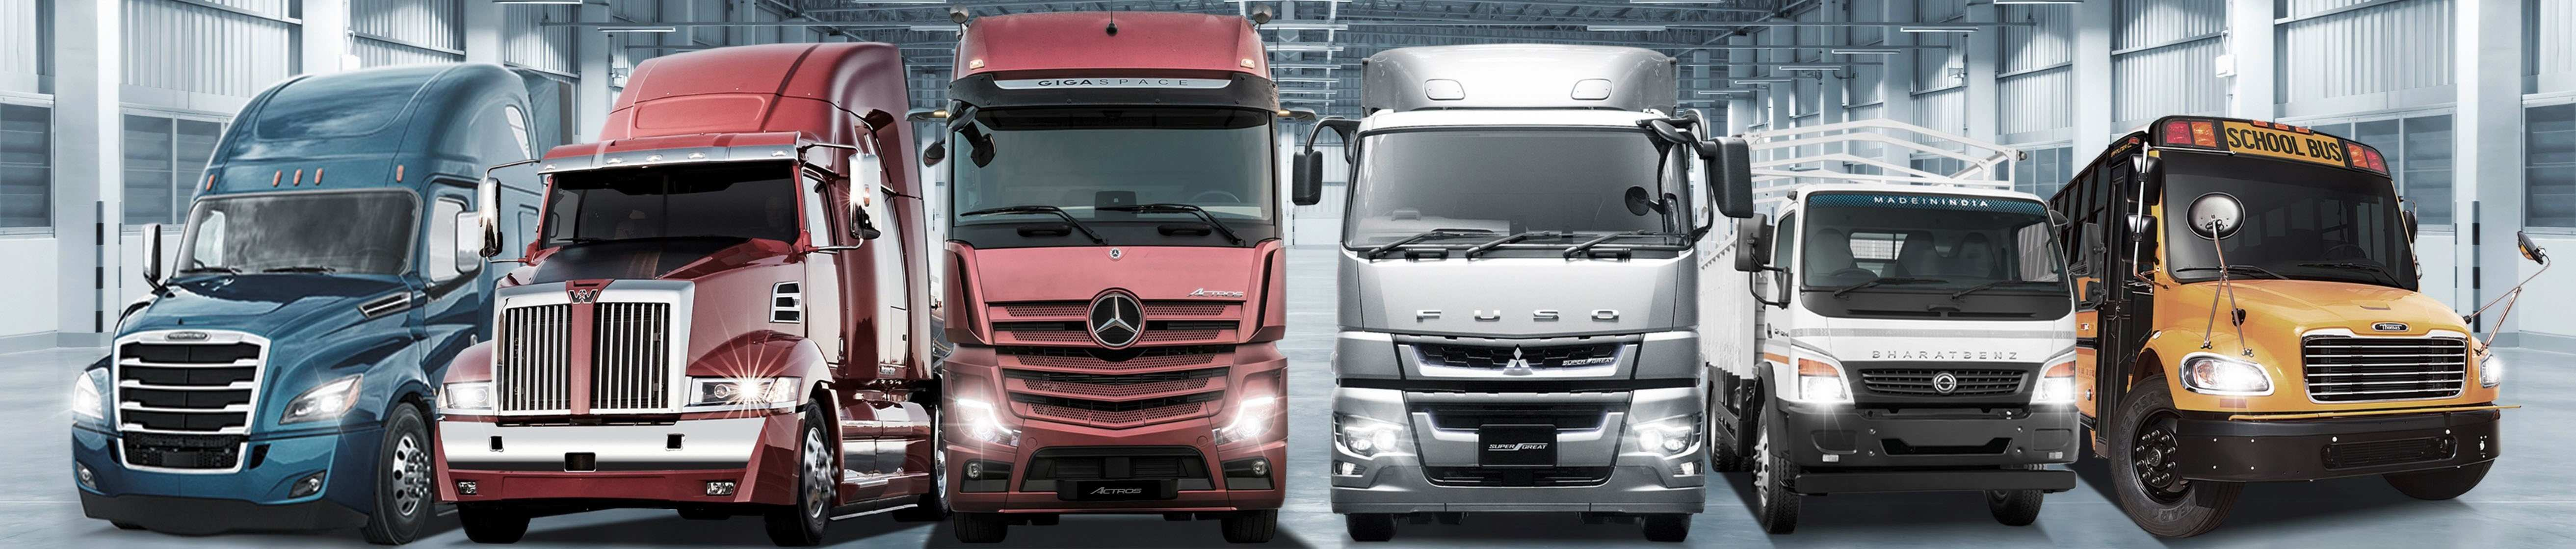 32 A Mercedes Truck 2019 Wallpaper